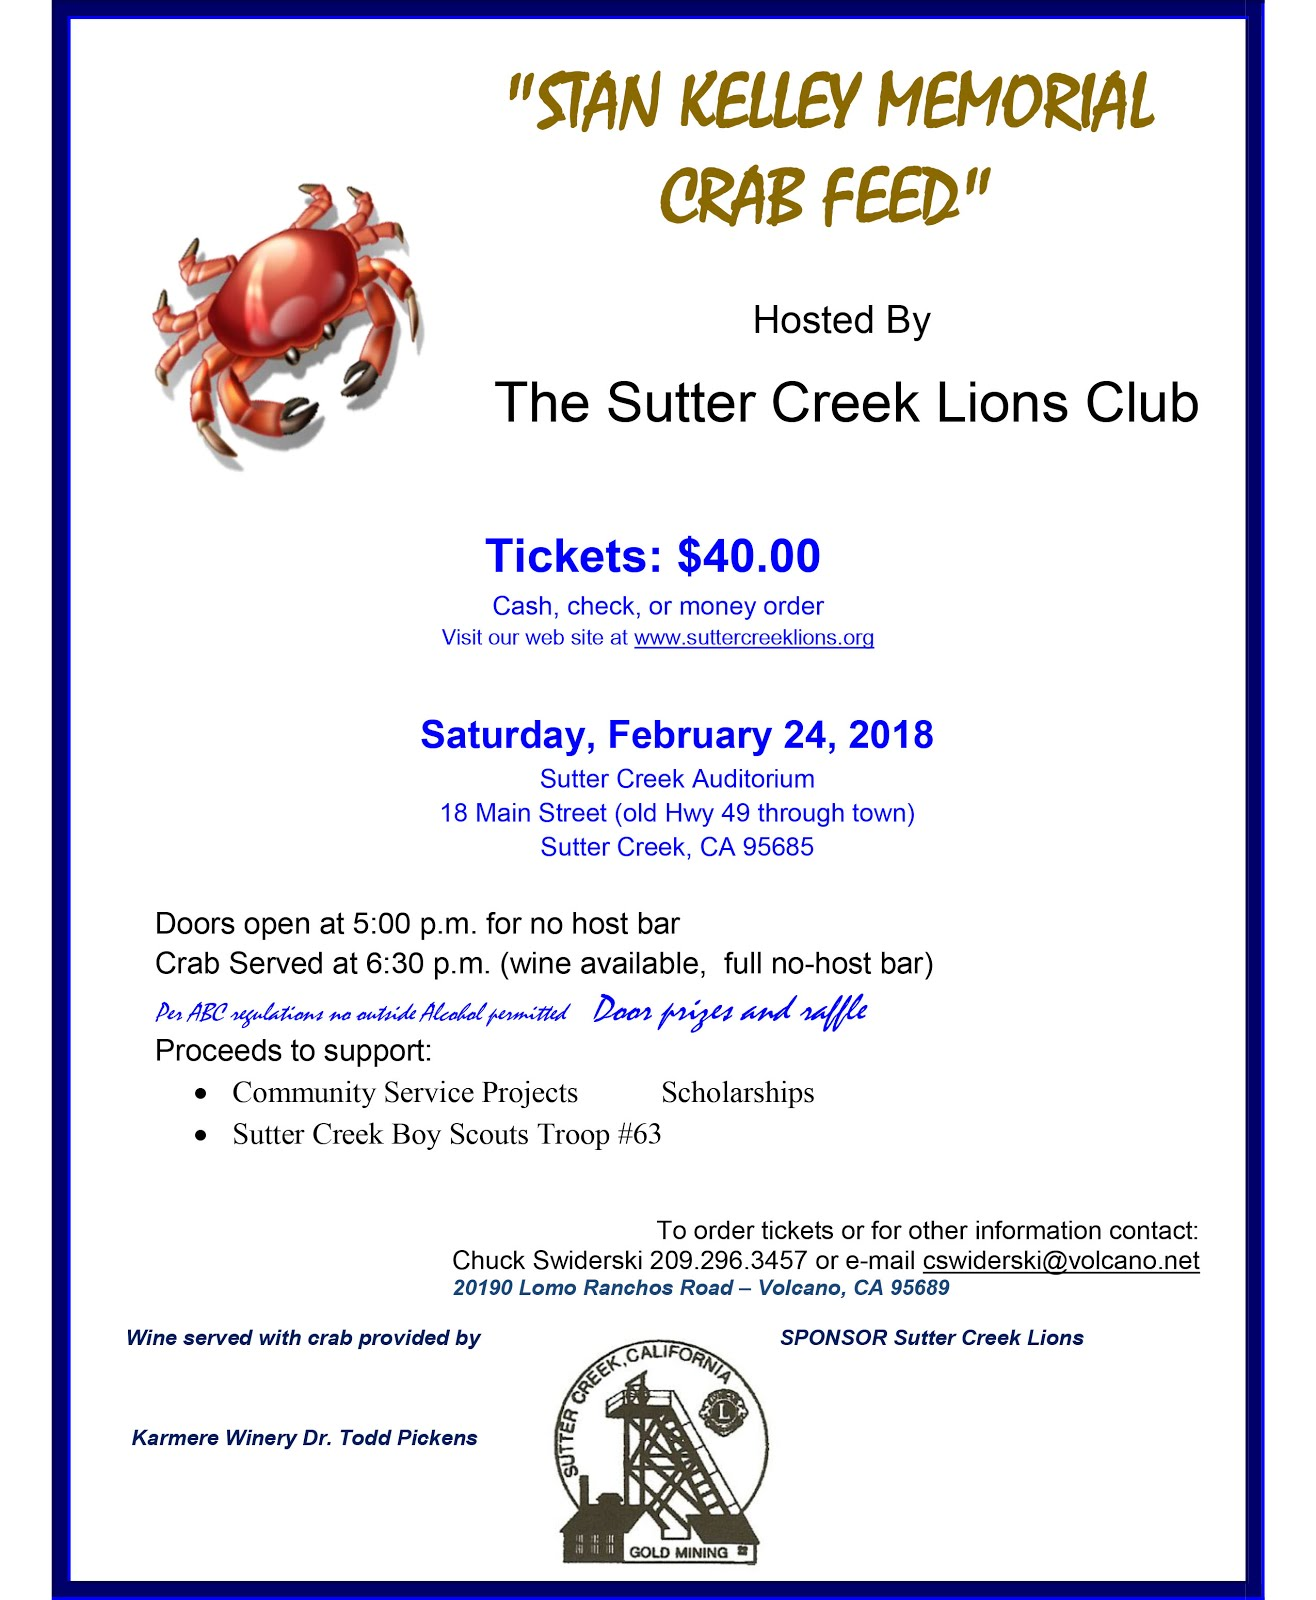 Stan Kelley Memorial Crab Feed - Sat Feb 24